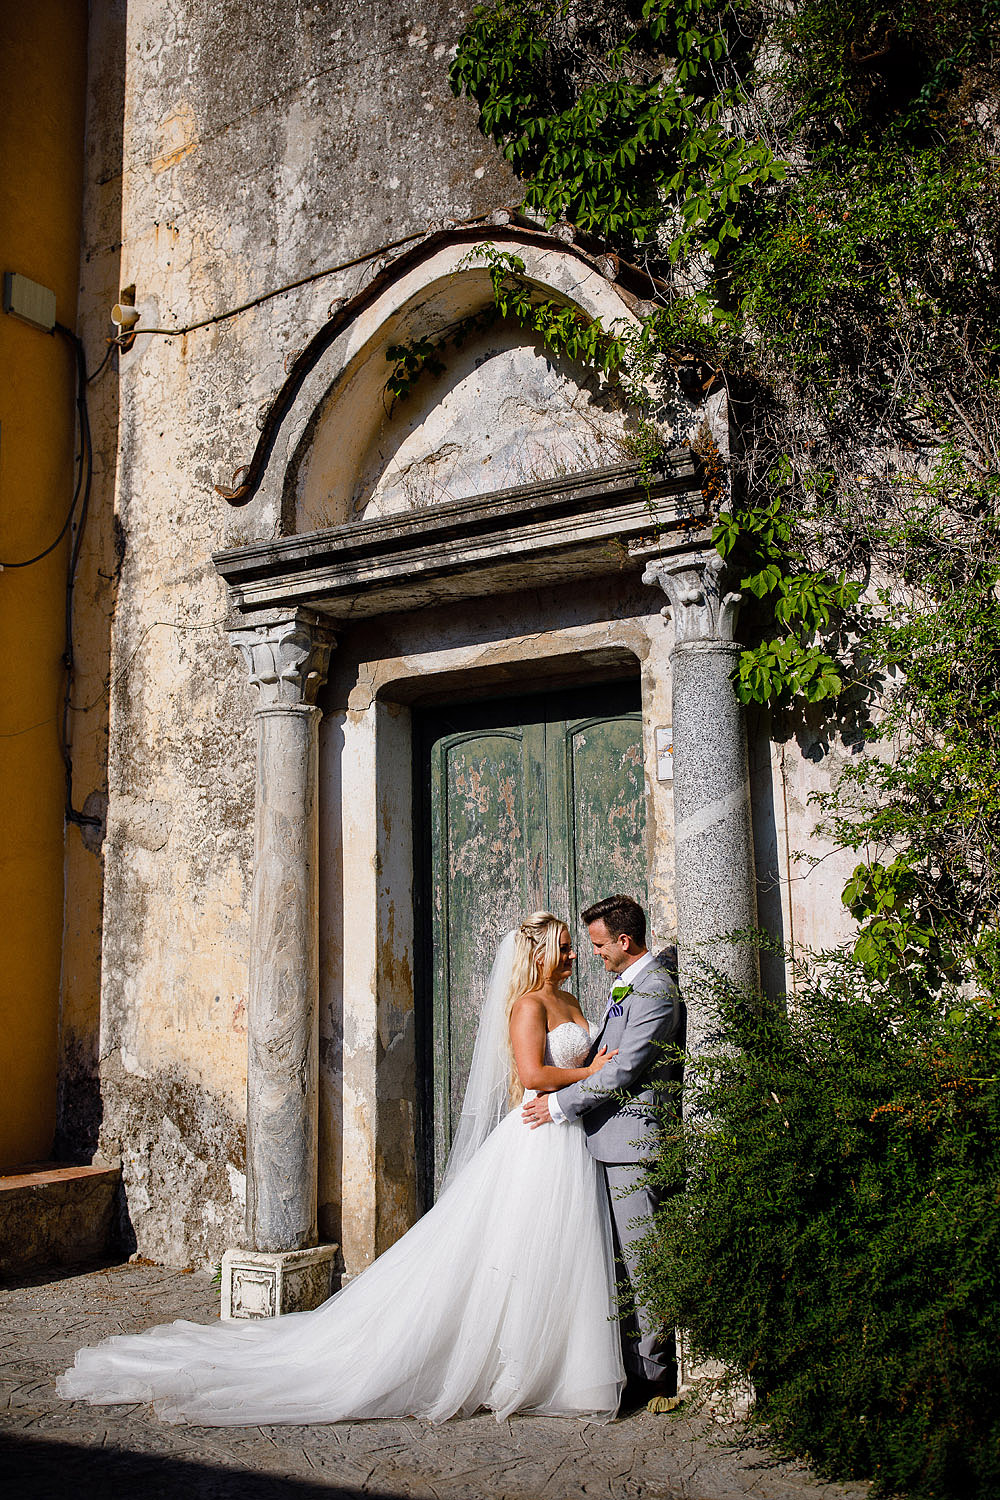 RAVELLO MATRIMONIO SULLA COSTIERA AMALFITANA :: Luxury wedding photography - 43